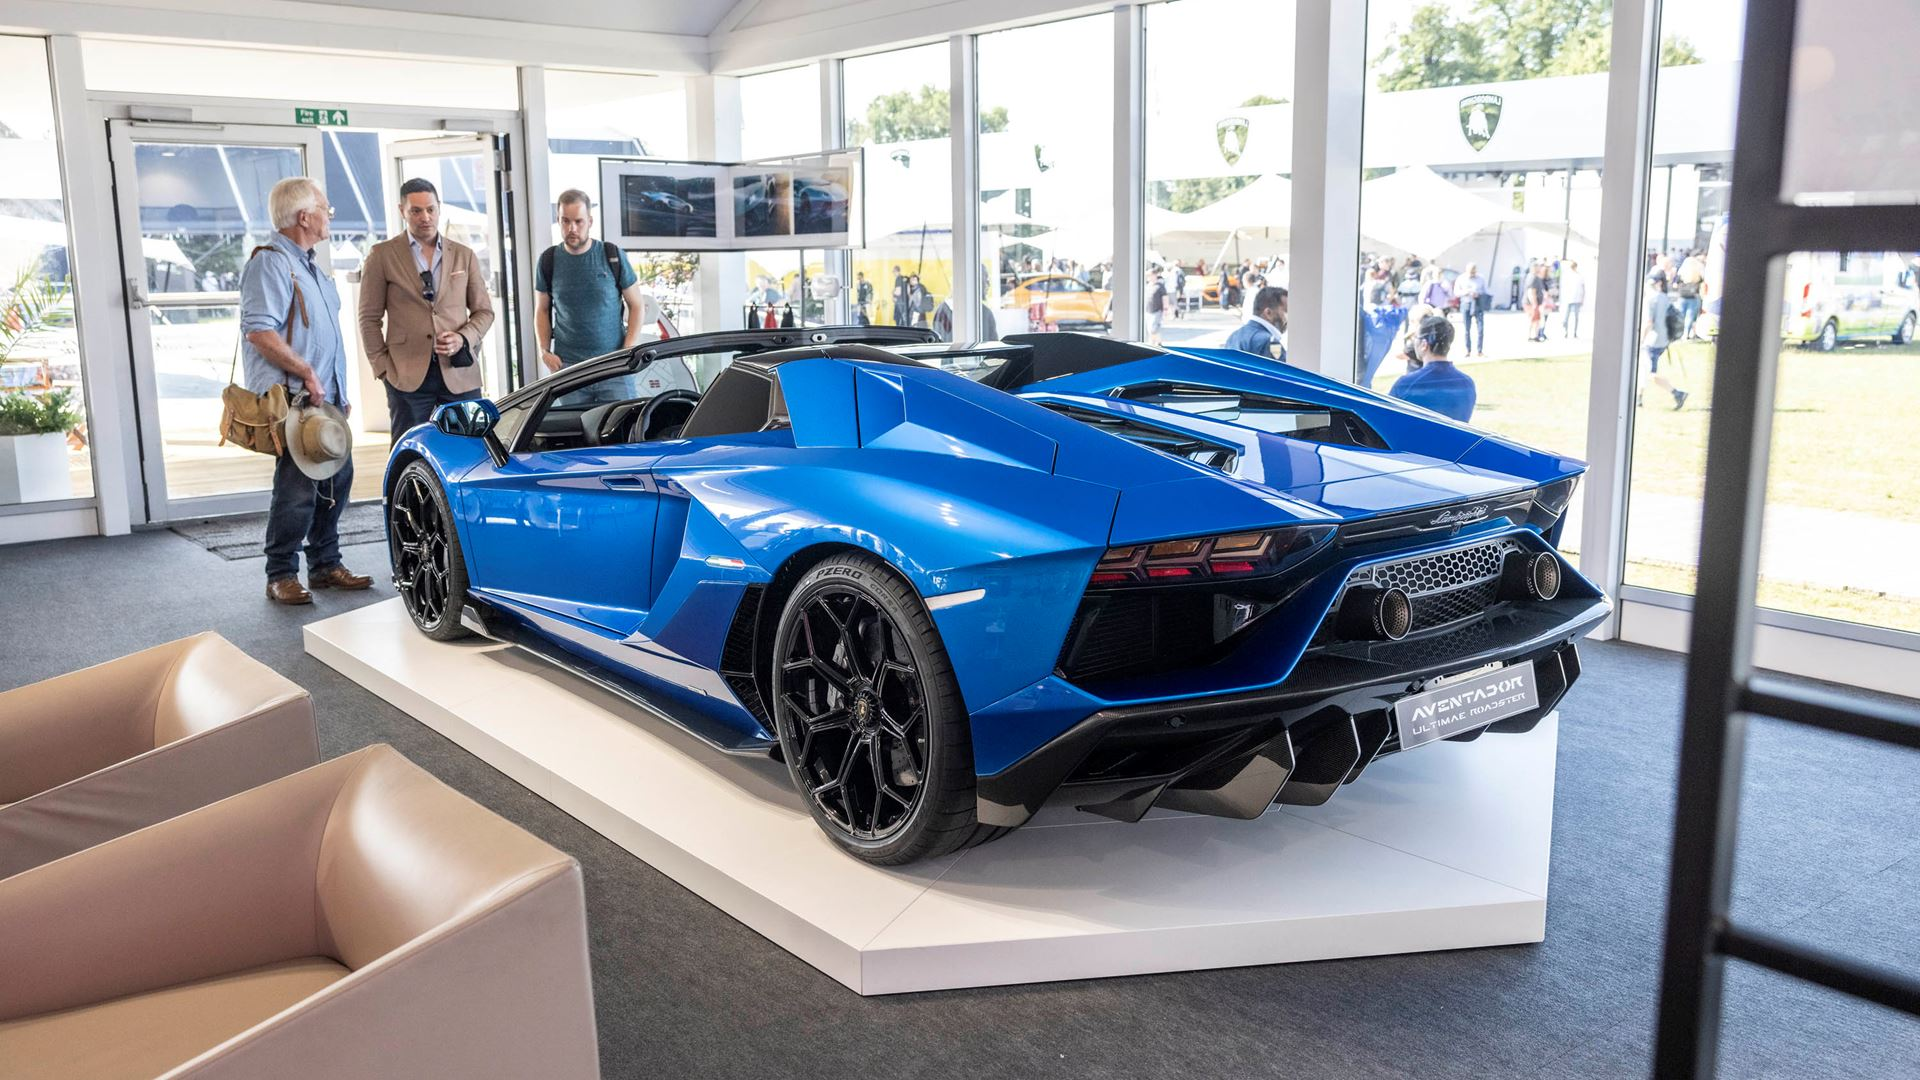 Automobili Lamborghini celebrates V12 and its Squadra Corse motorsport prowess on road and track, at Goodwood Festival of Speed 2021 - Image 6